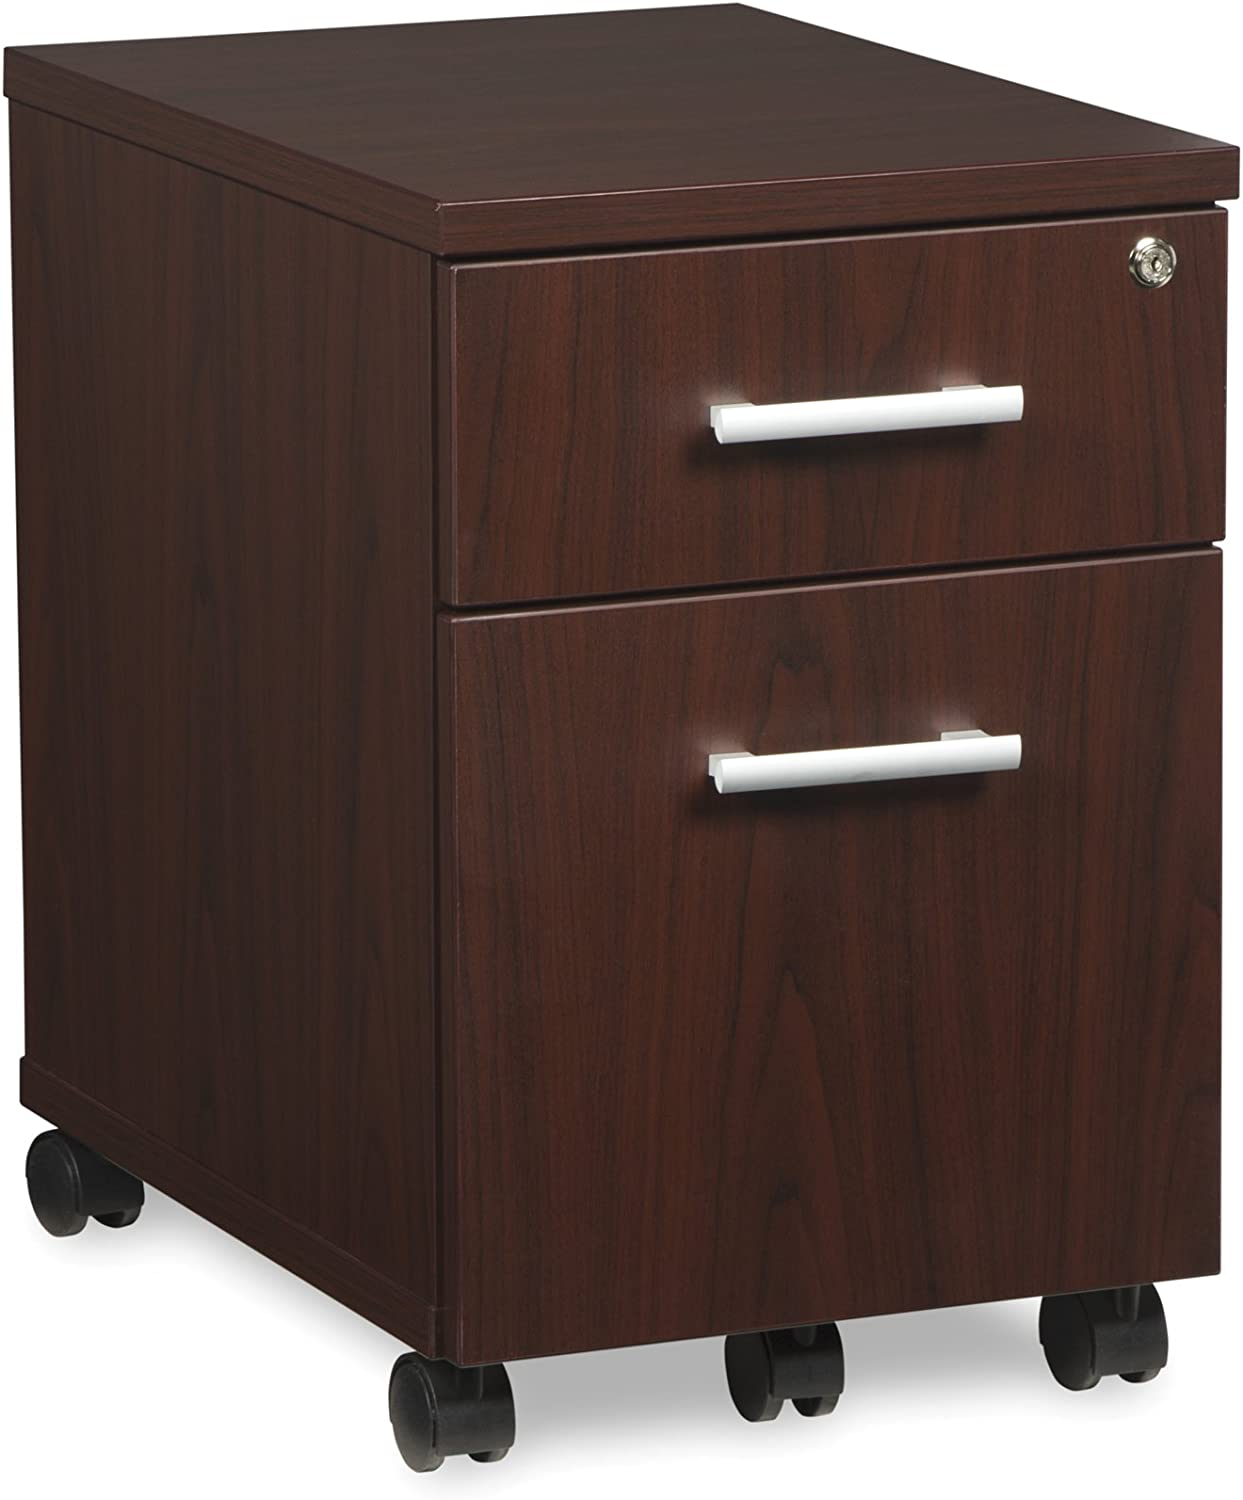 OFM Core Collection Fulcrum Series Locking Pedestal, Mobile 2-Drawer Filing Cabinet, Mahogany